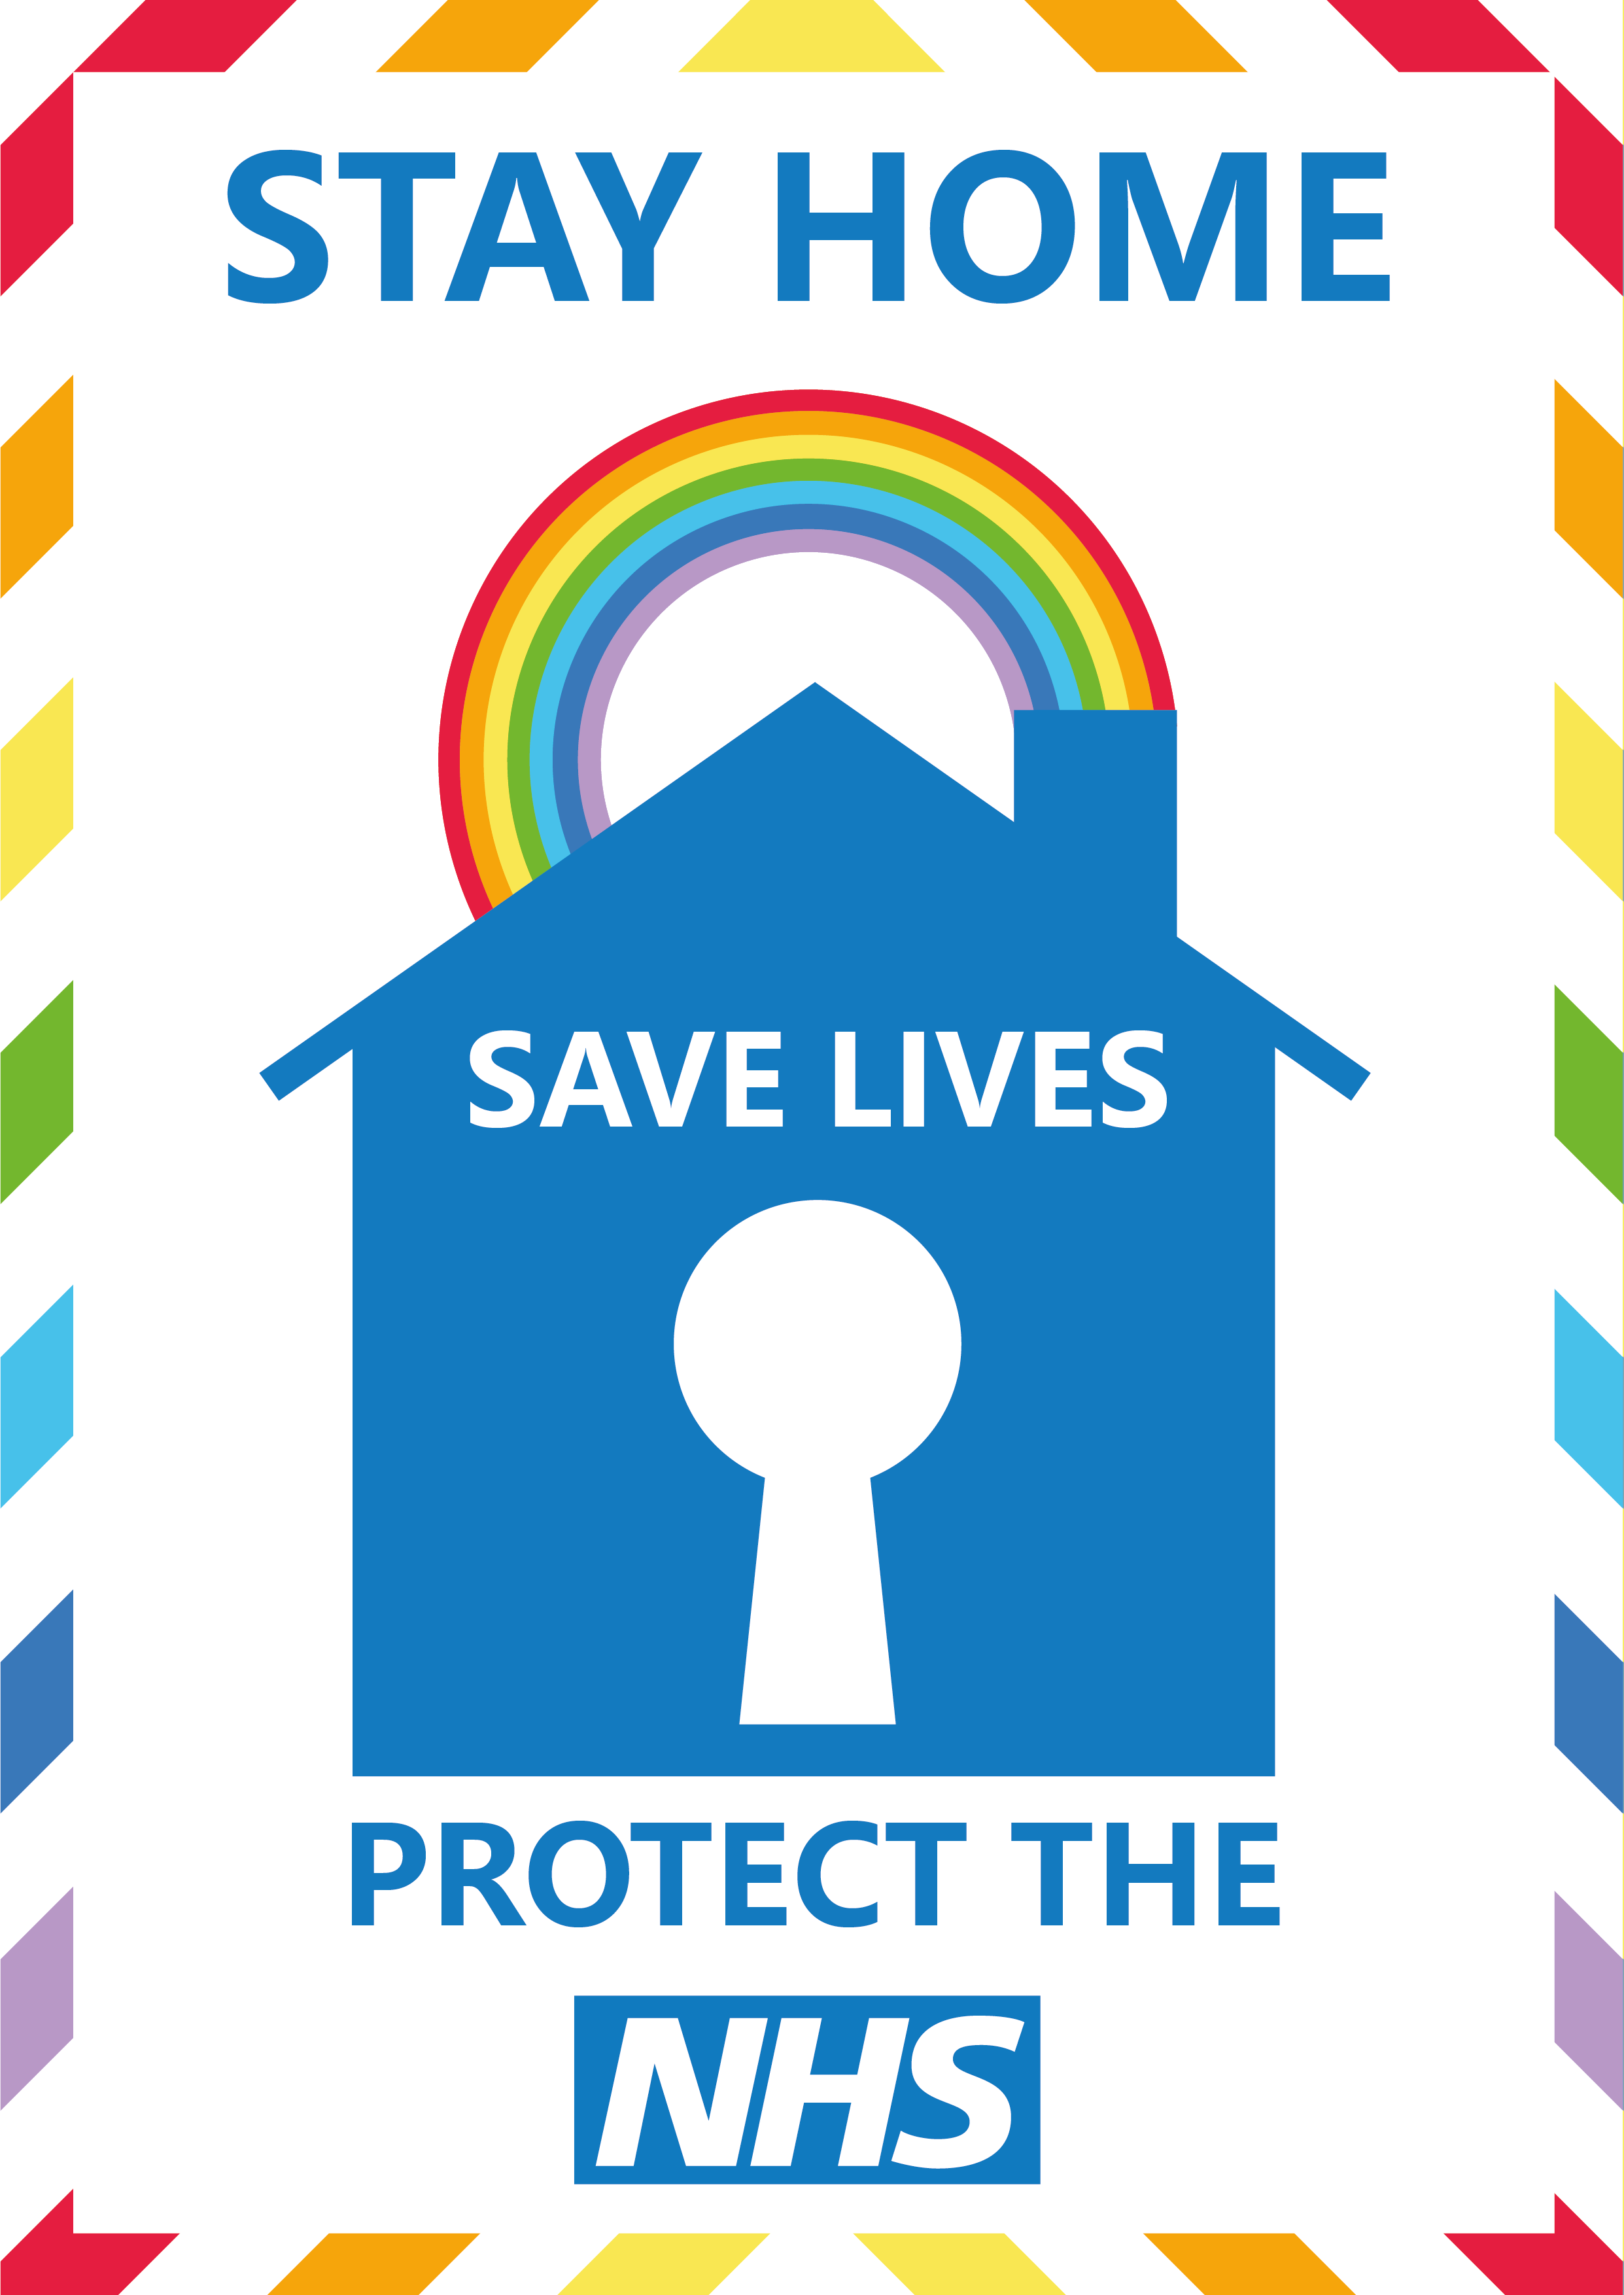 Stay Home Save Lives Protect the NHS poster with house in the centre